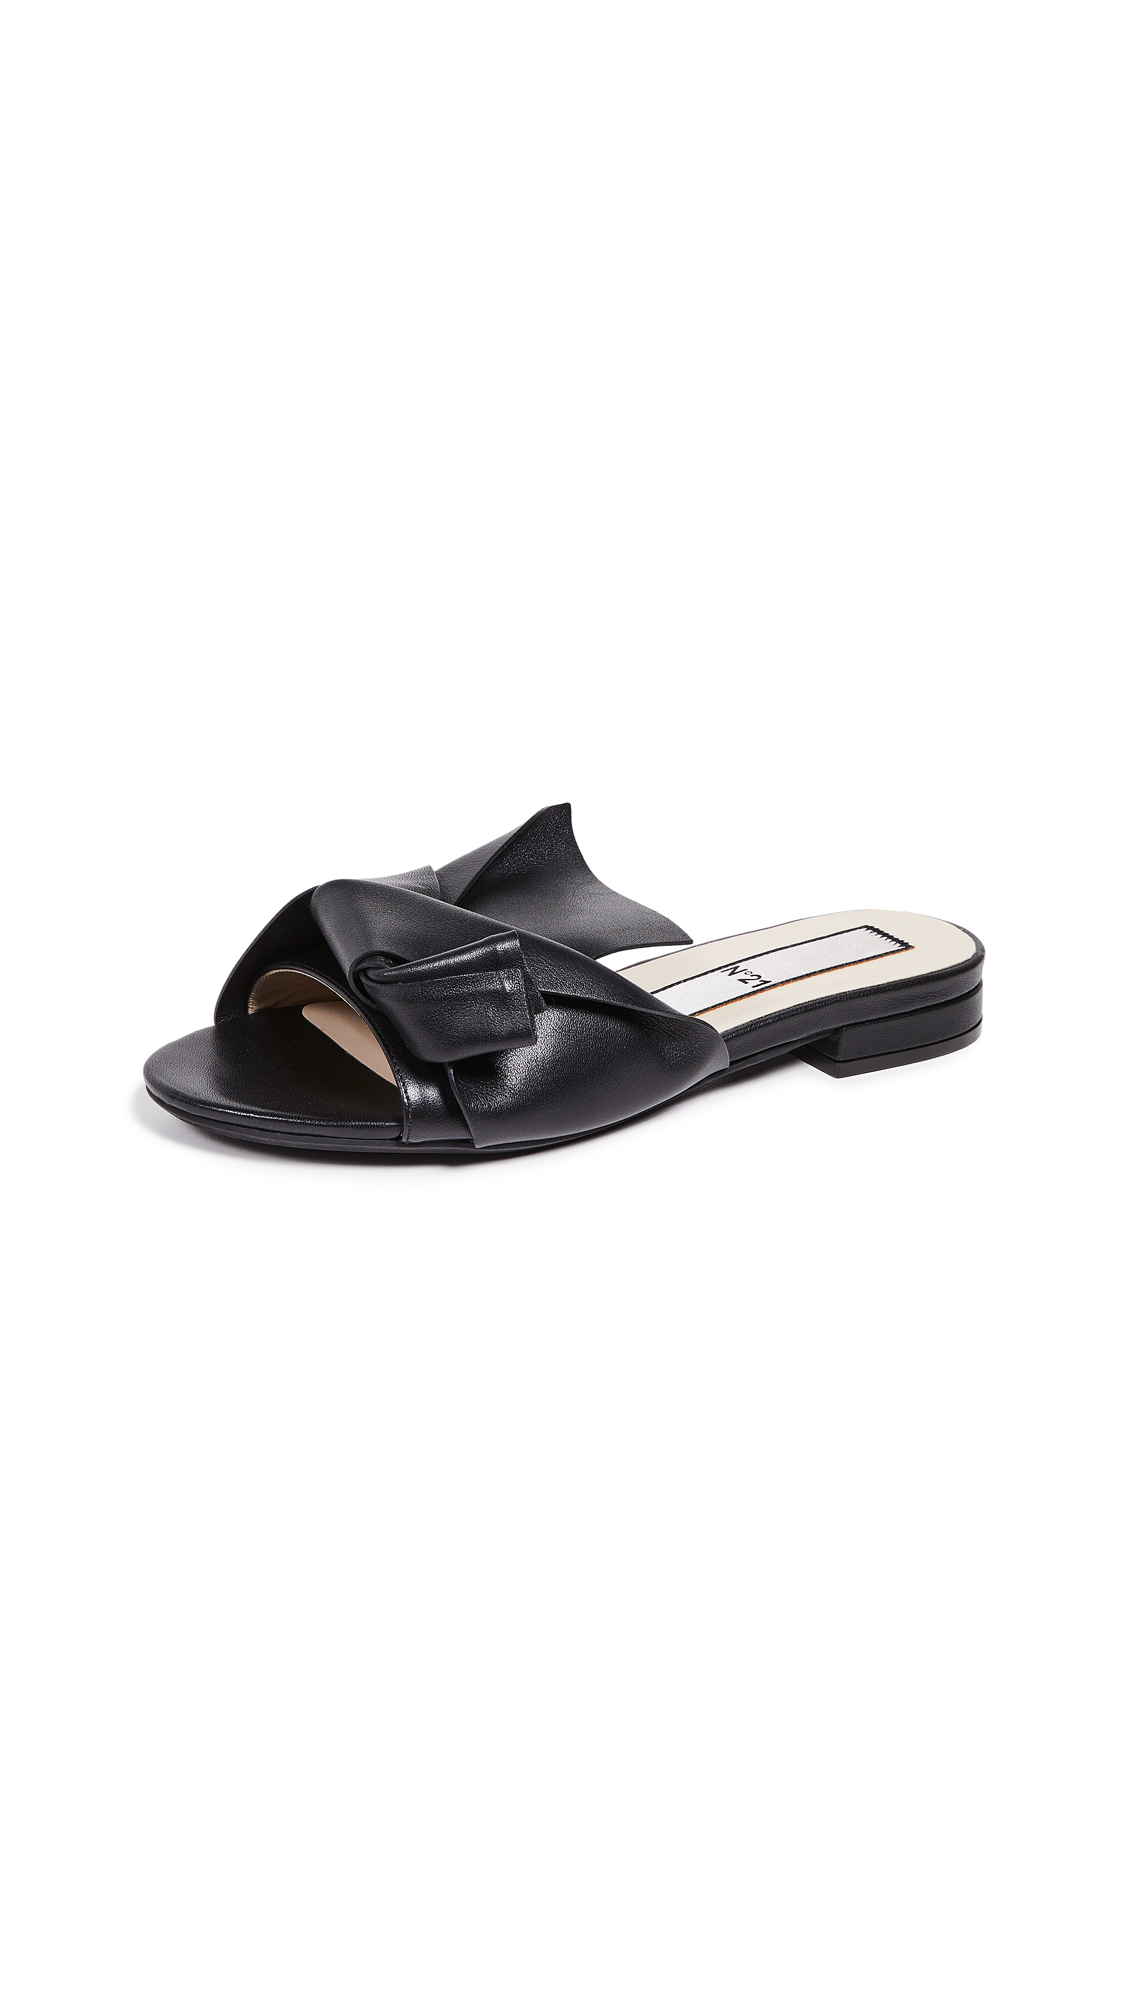 No. 21 Knot Sandal Slides - Black